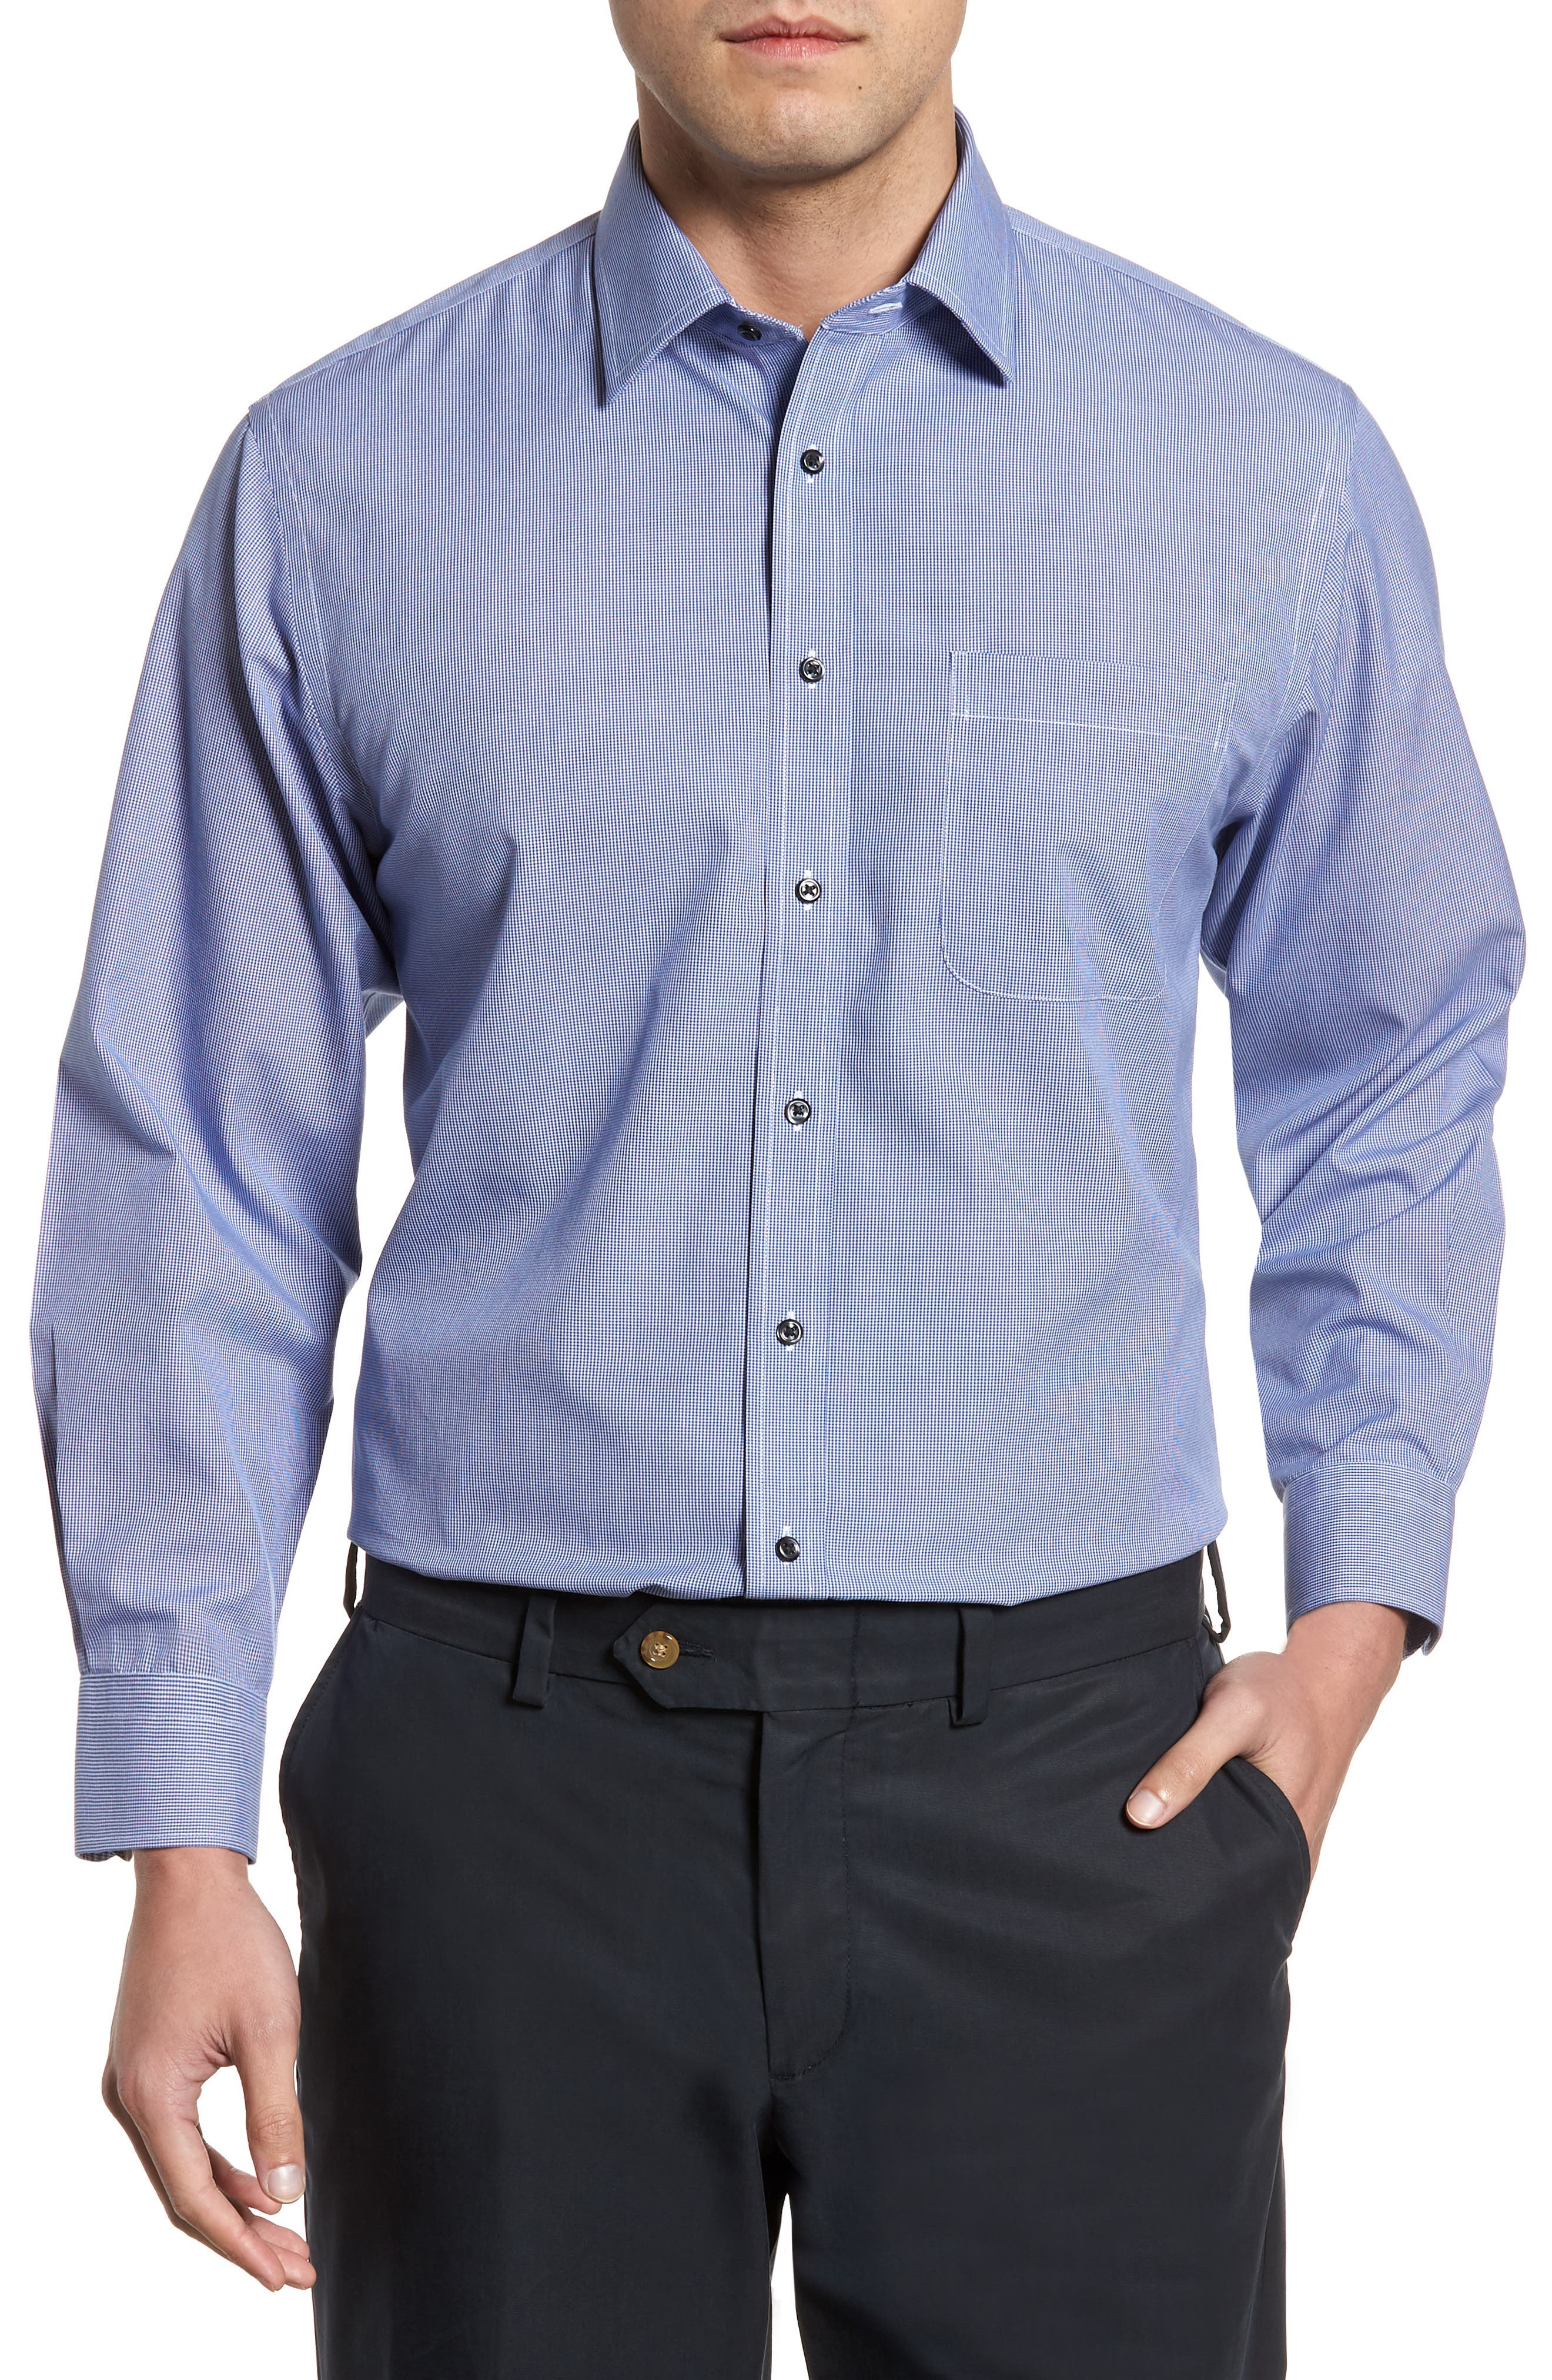 Smartcare<sup>™</sup> Traditional Fit Micro Check Dress Shirt,                         Main,                         color, Blue Marine